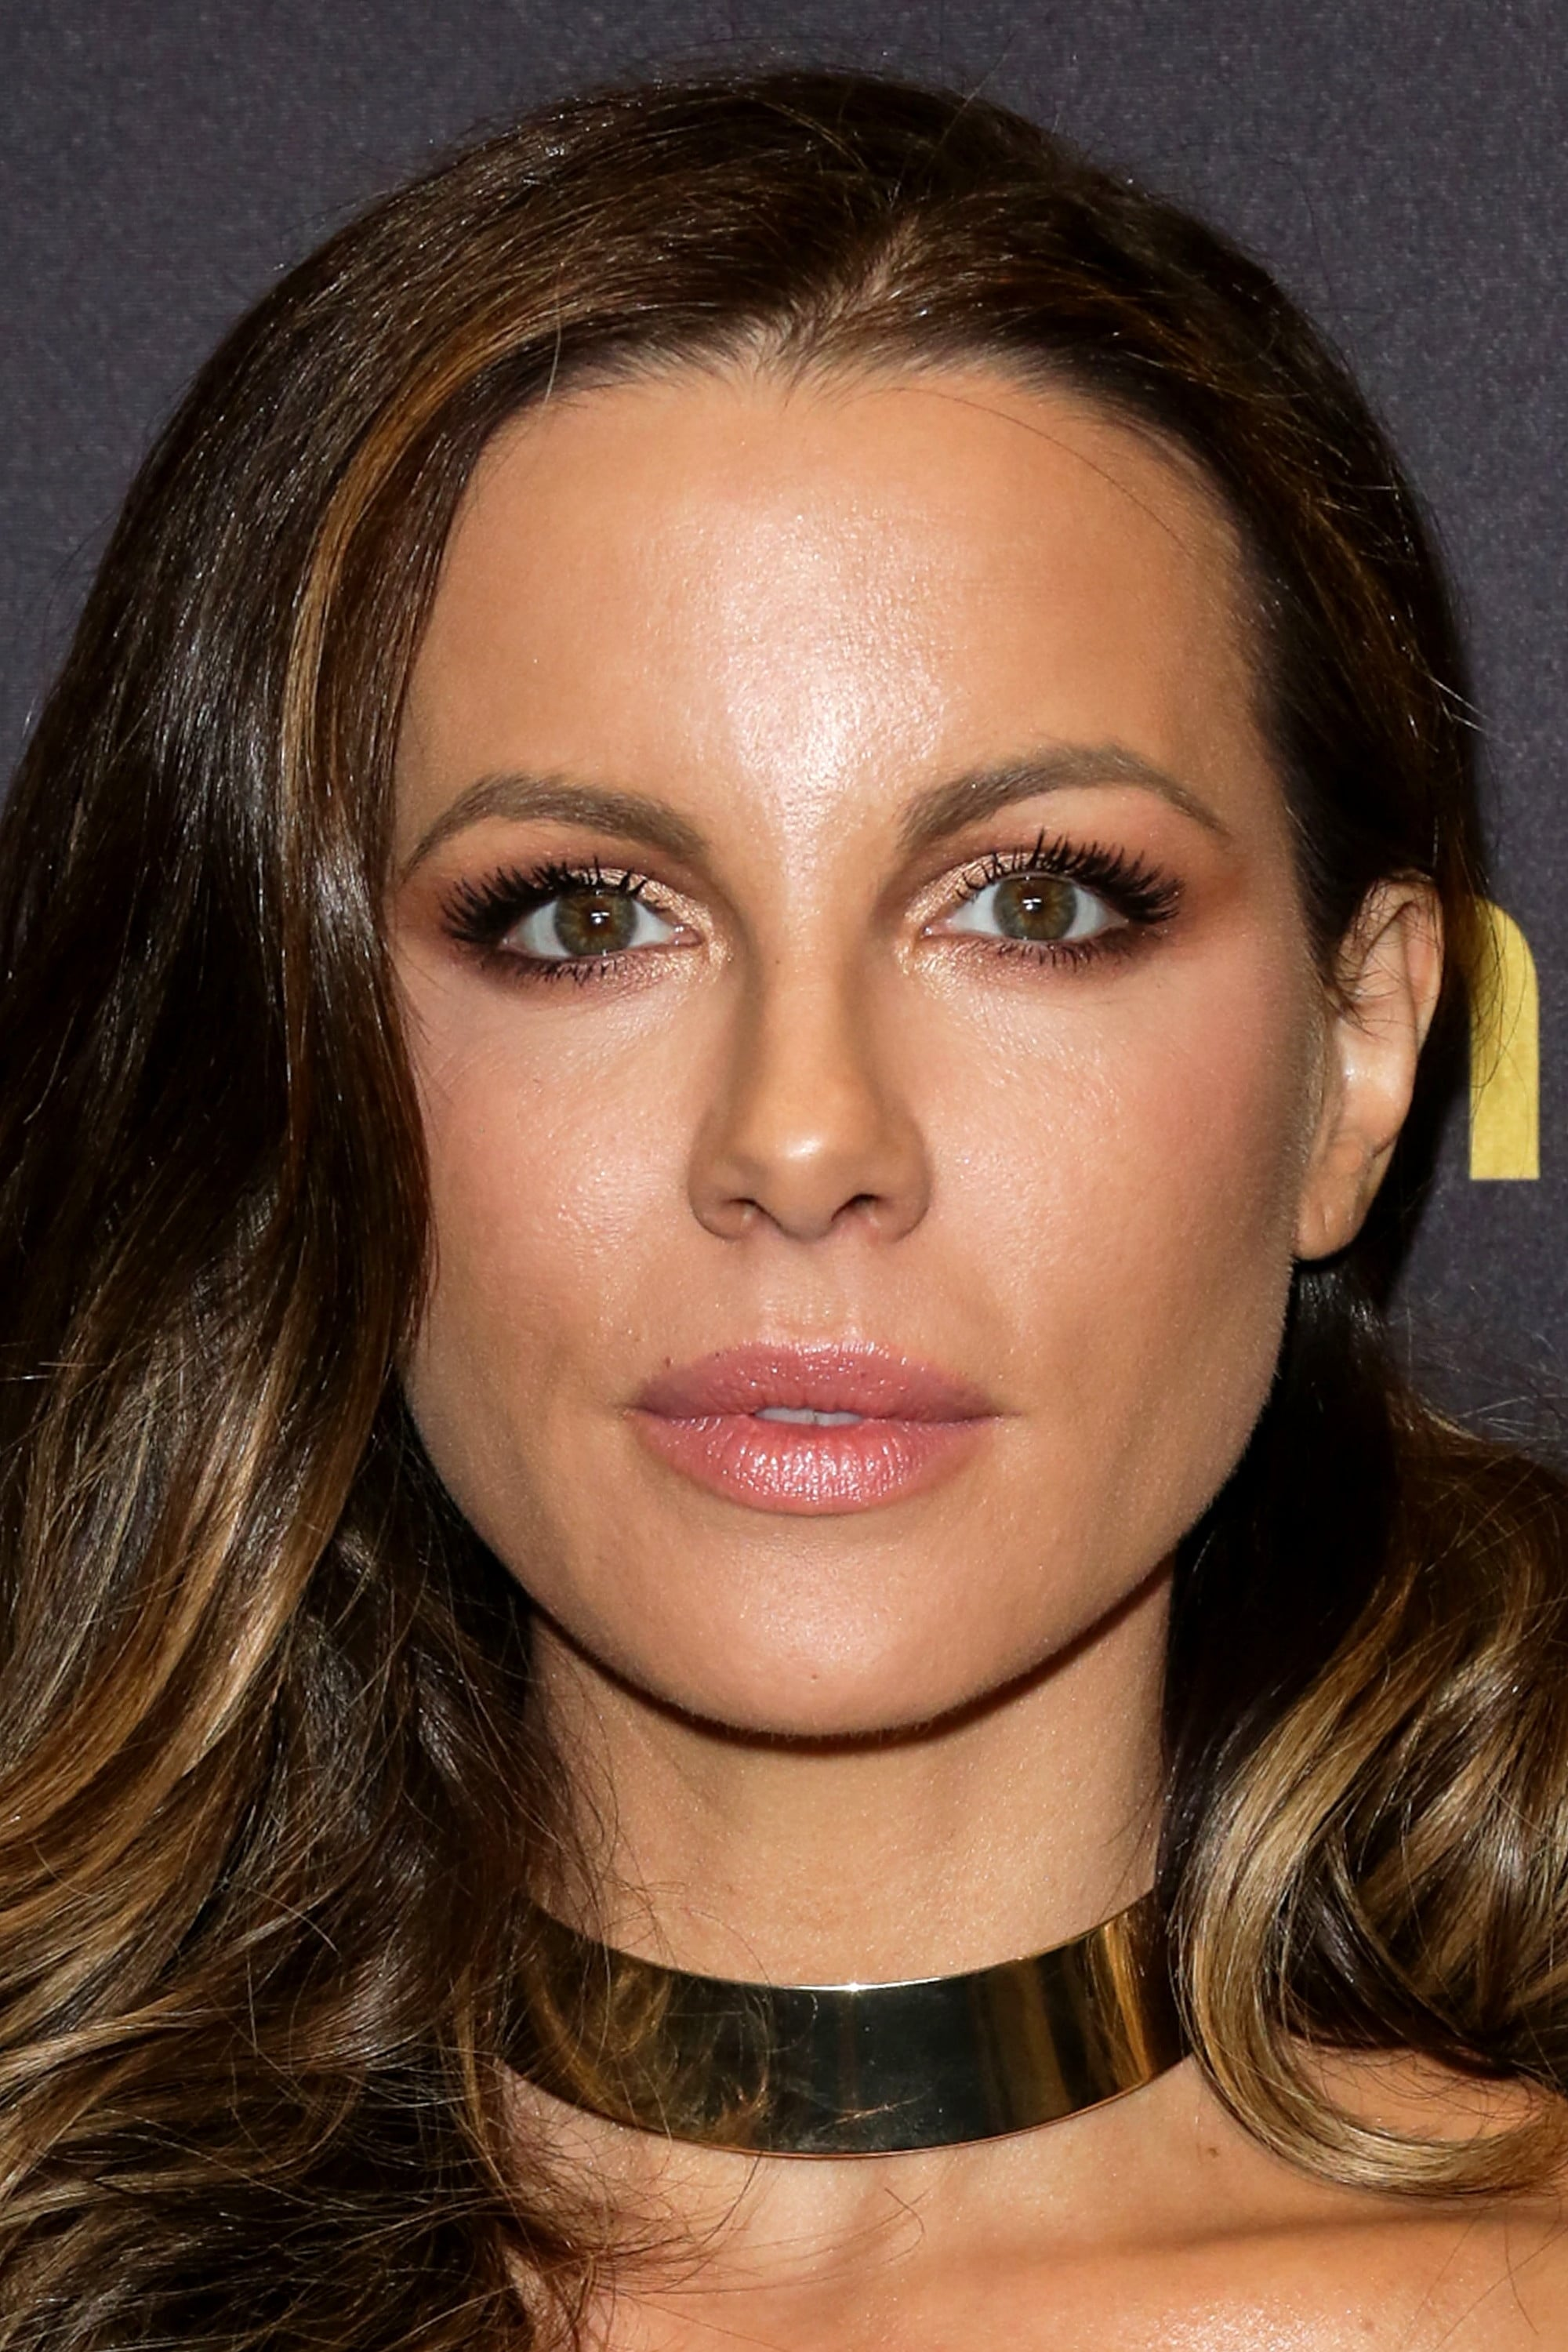 Kate Beckinsale - Profile Images — The Movie Database (TMDb) Kate Beckinsale